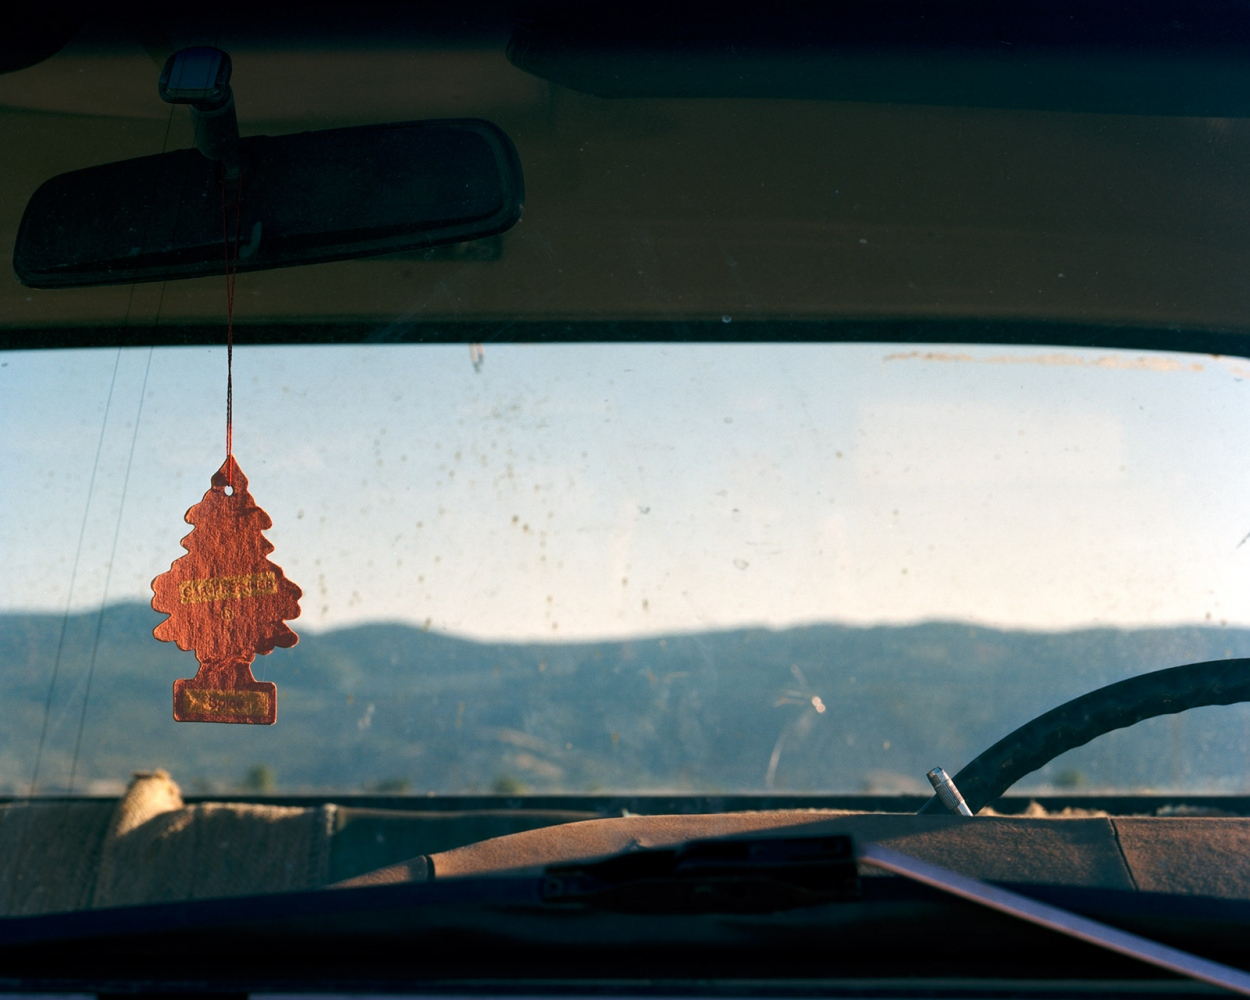 Little Tree Air Freshener, 2008